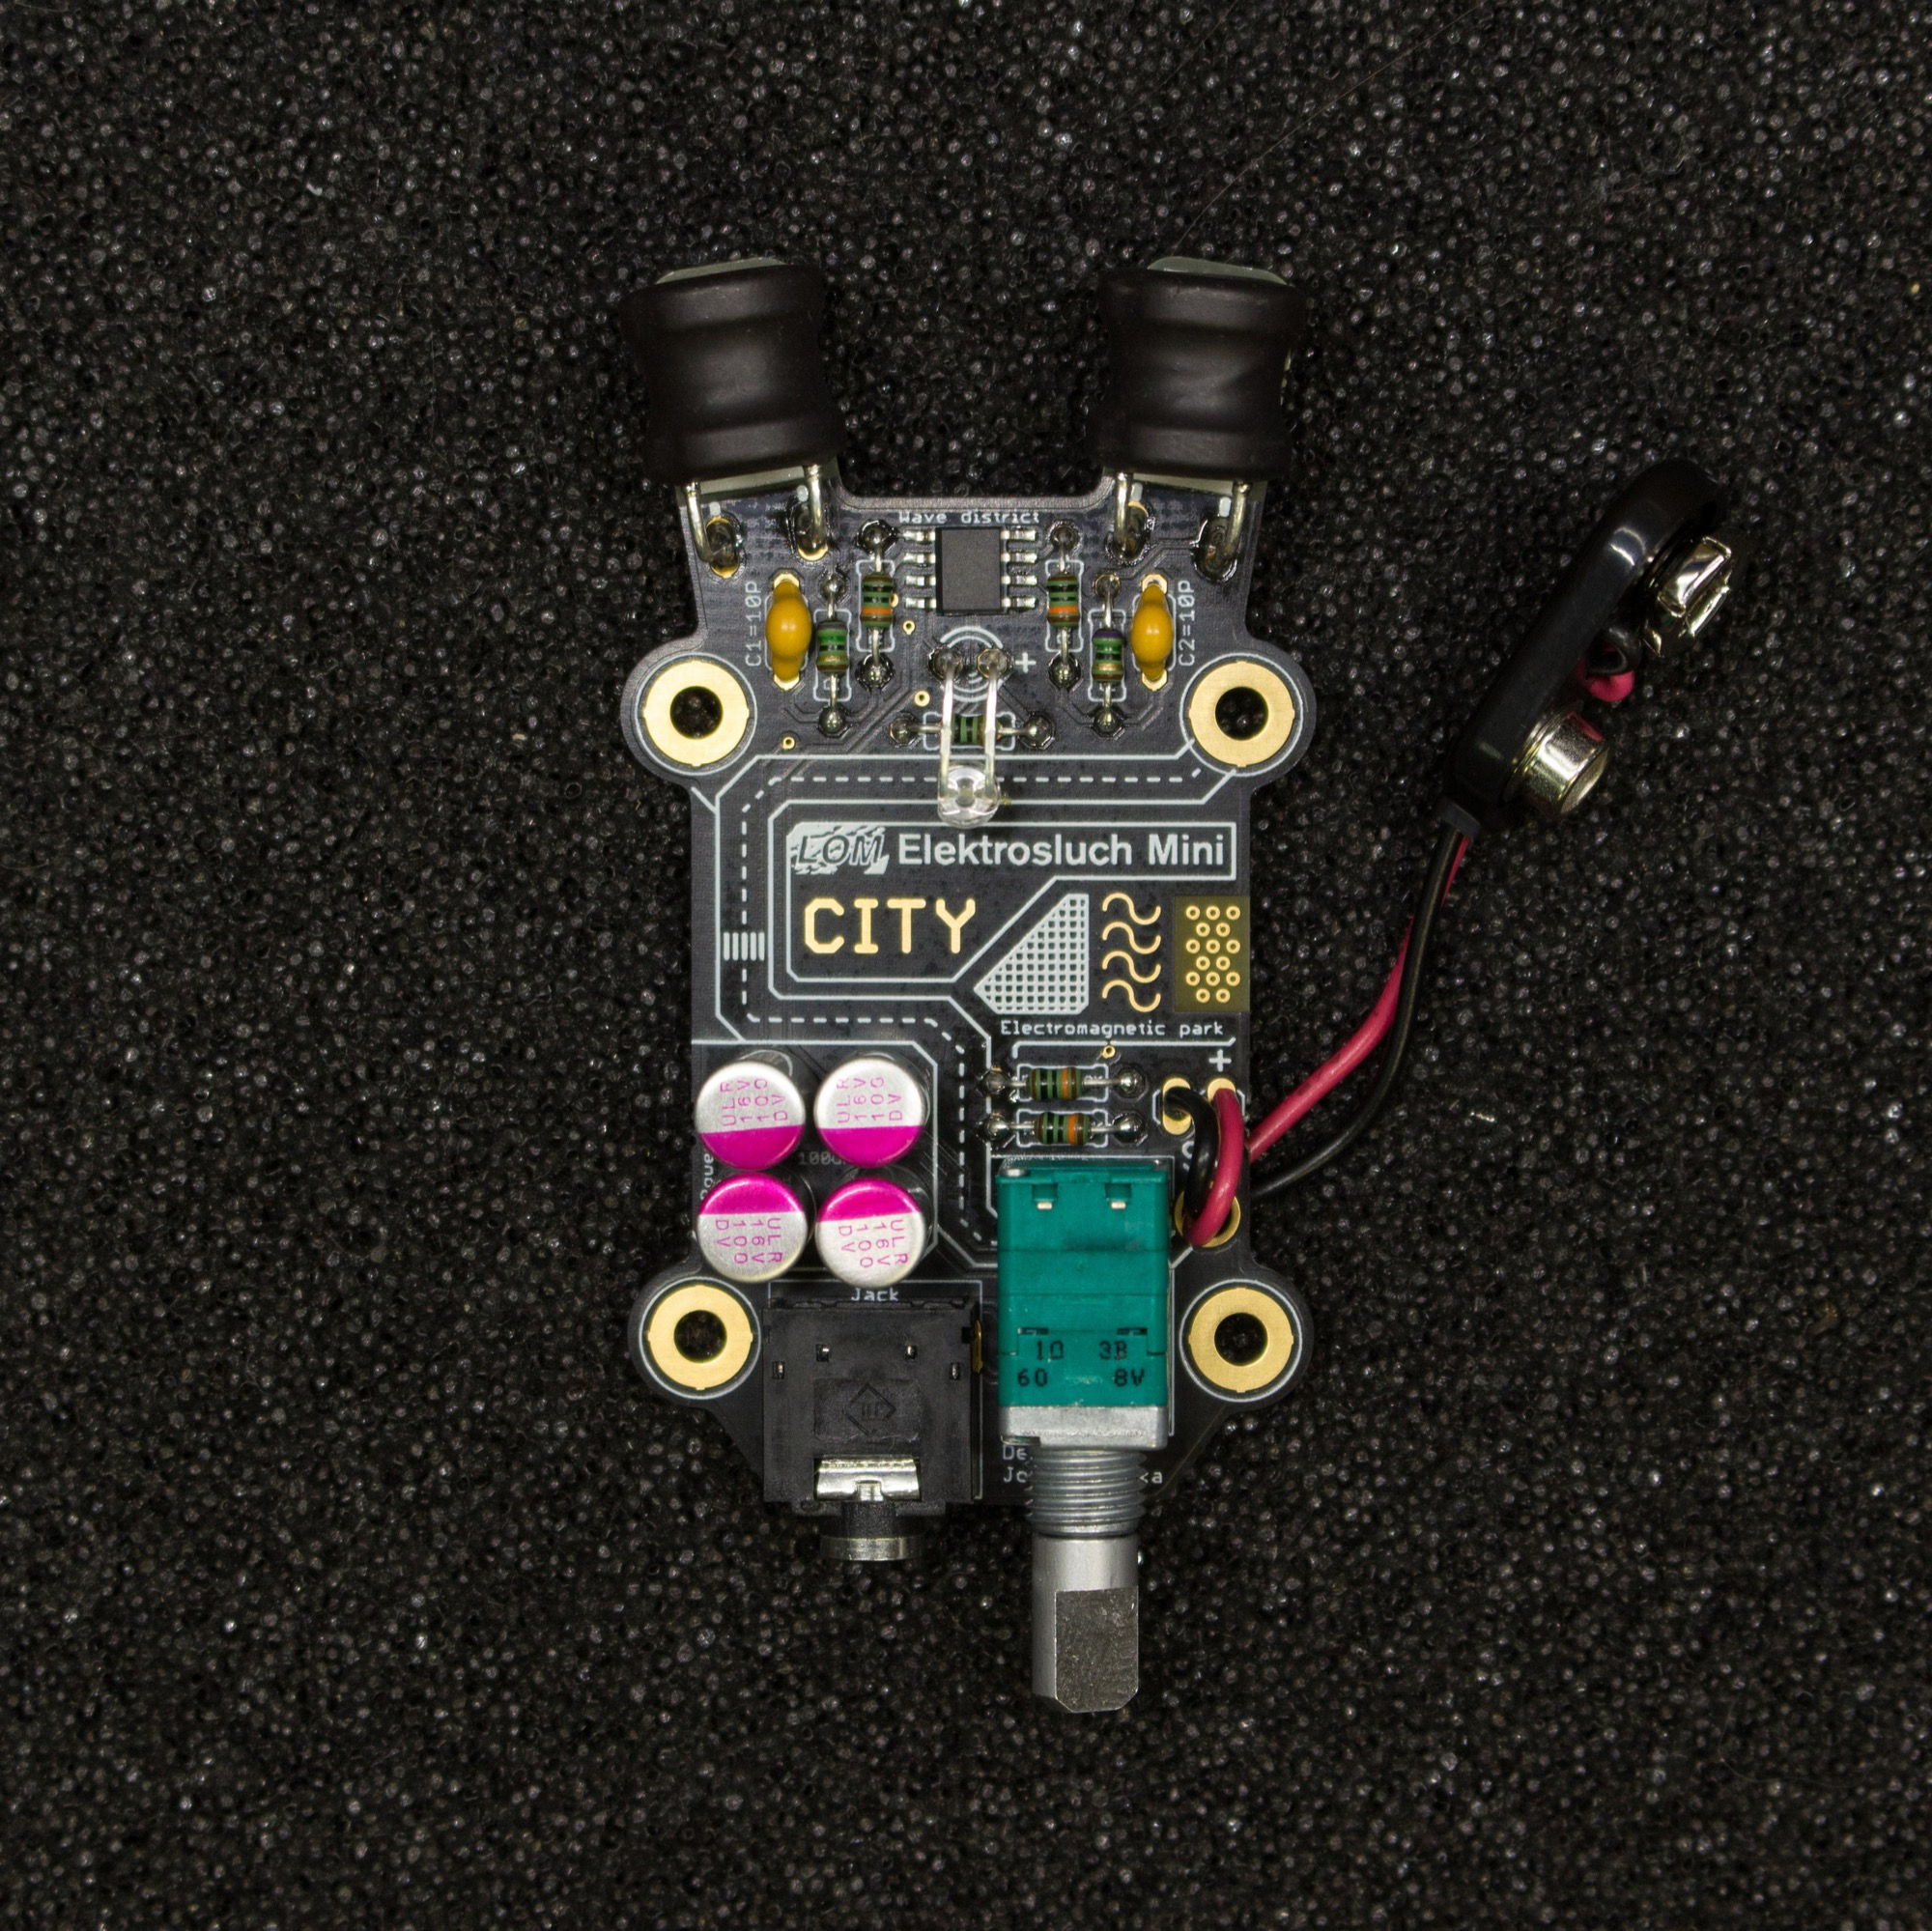 elektrosluch_mini_city_guide-11.jpg